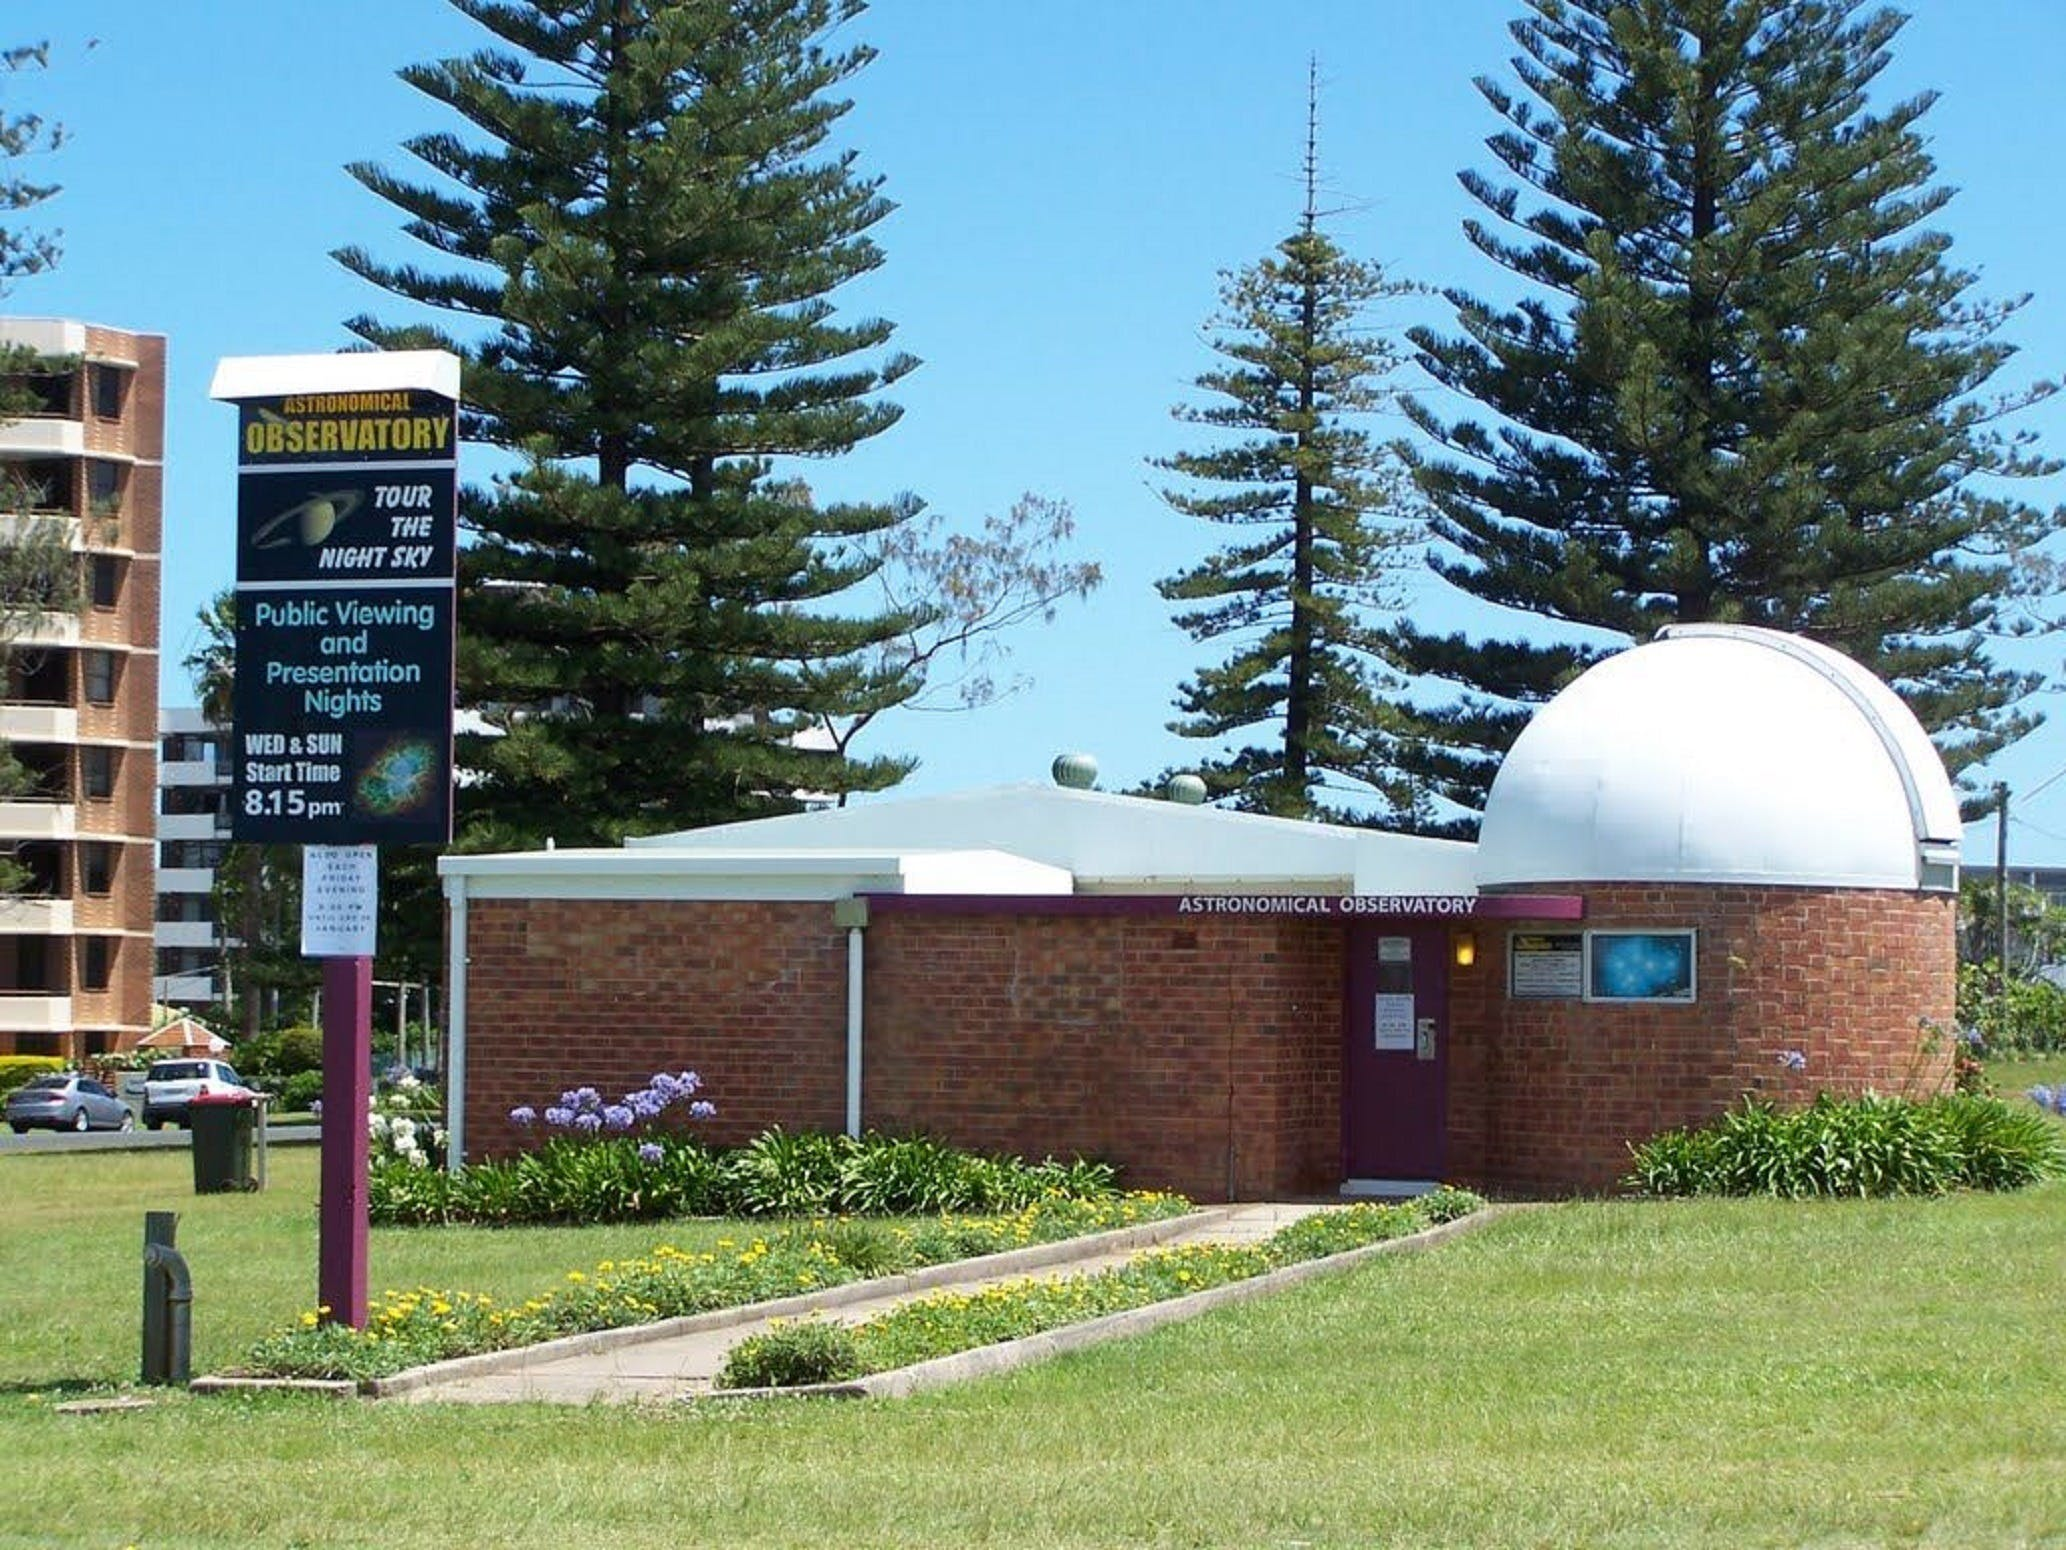 Port Macquarie Astronomical Observatory - Foster Accommodation